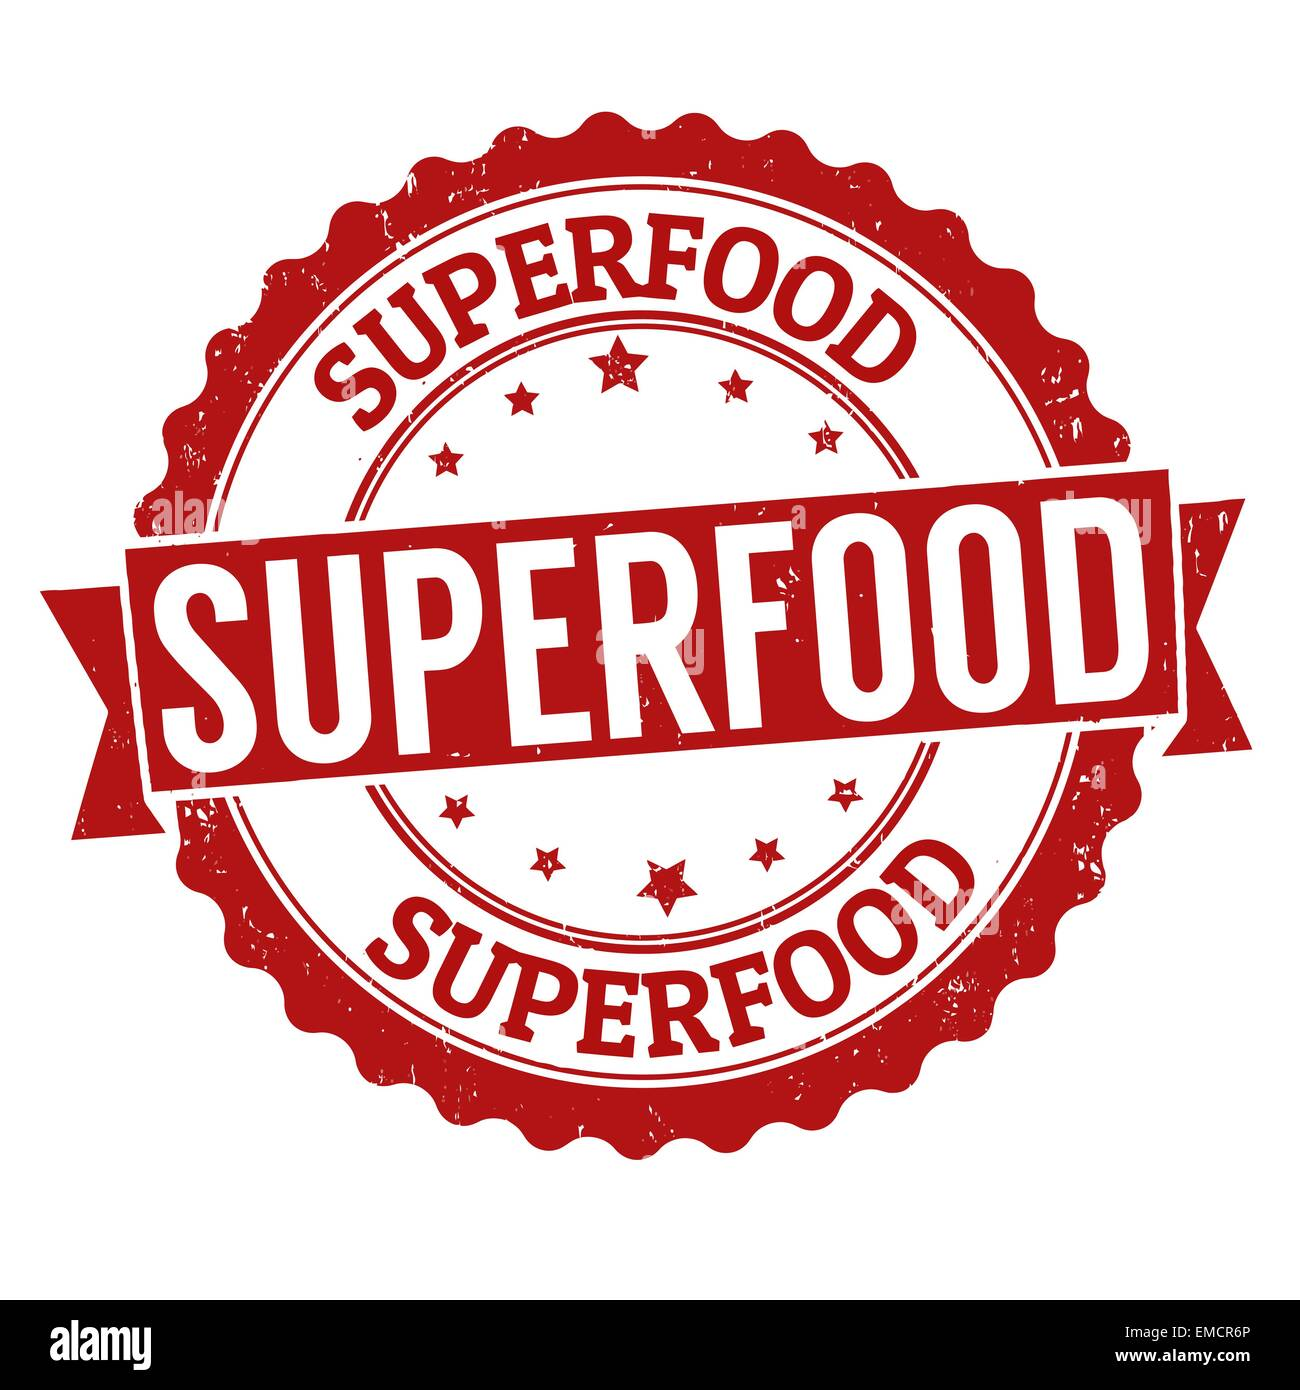 Superfood stamp - Stock Image